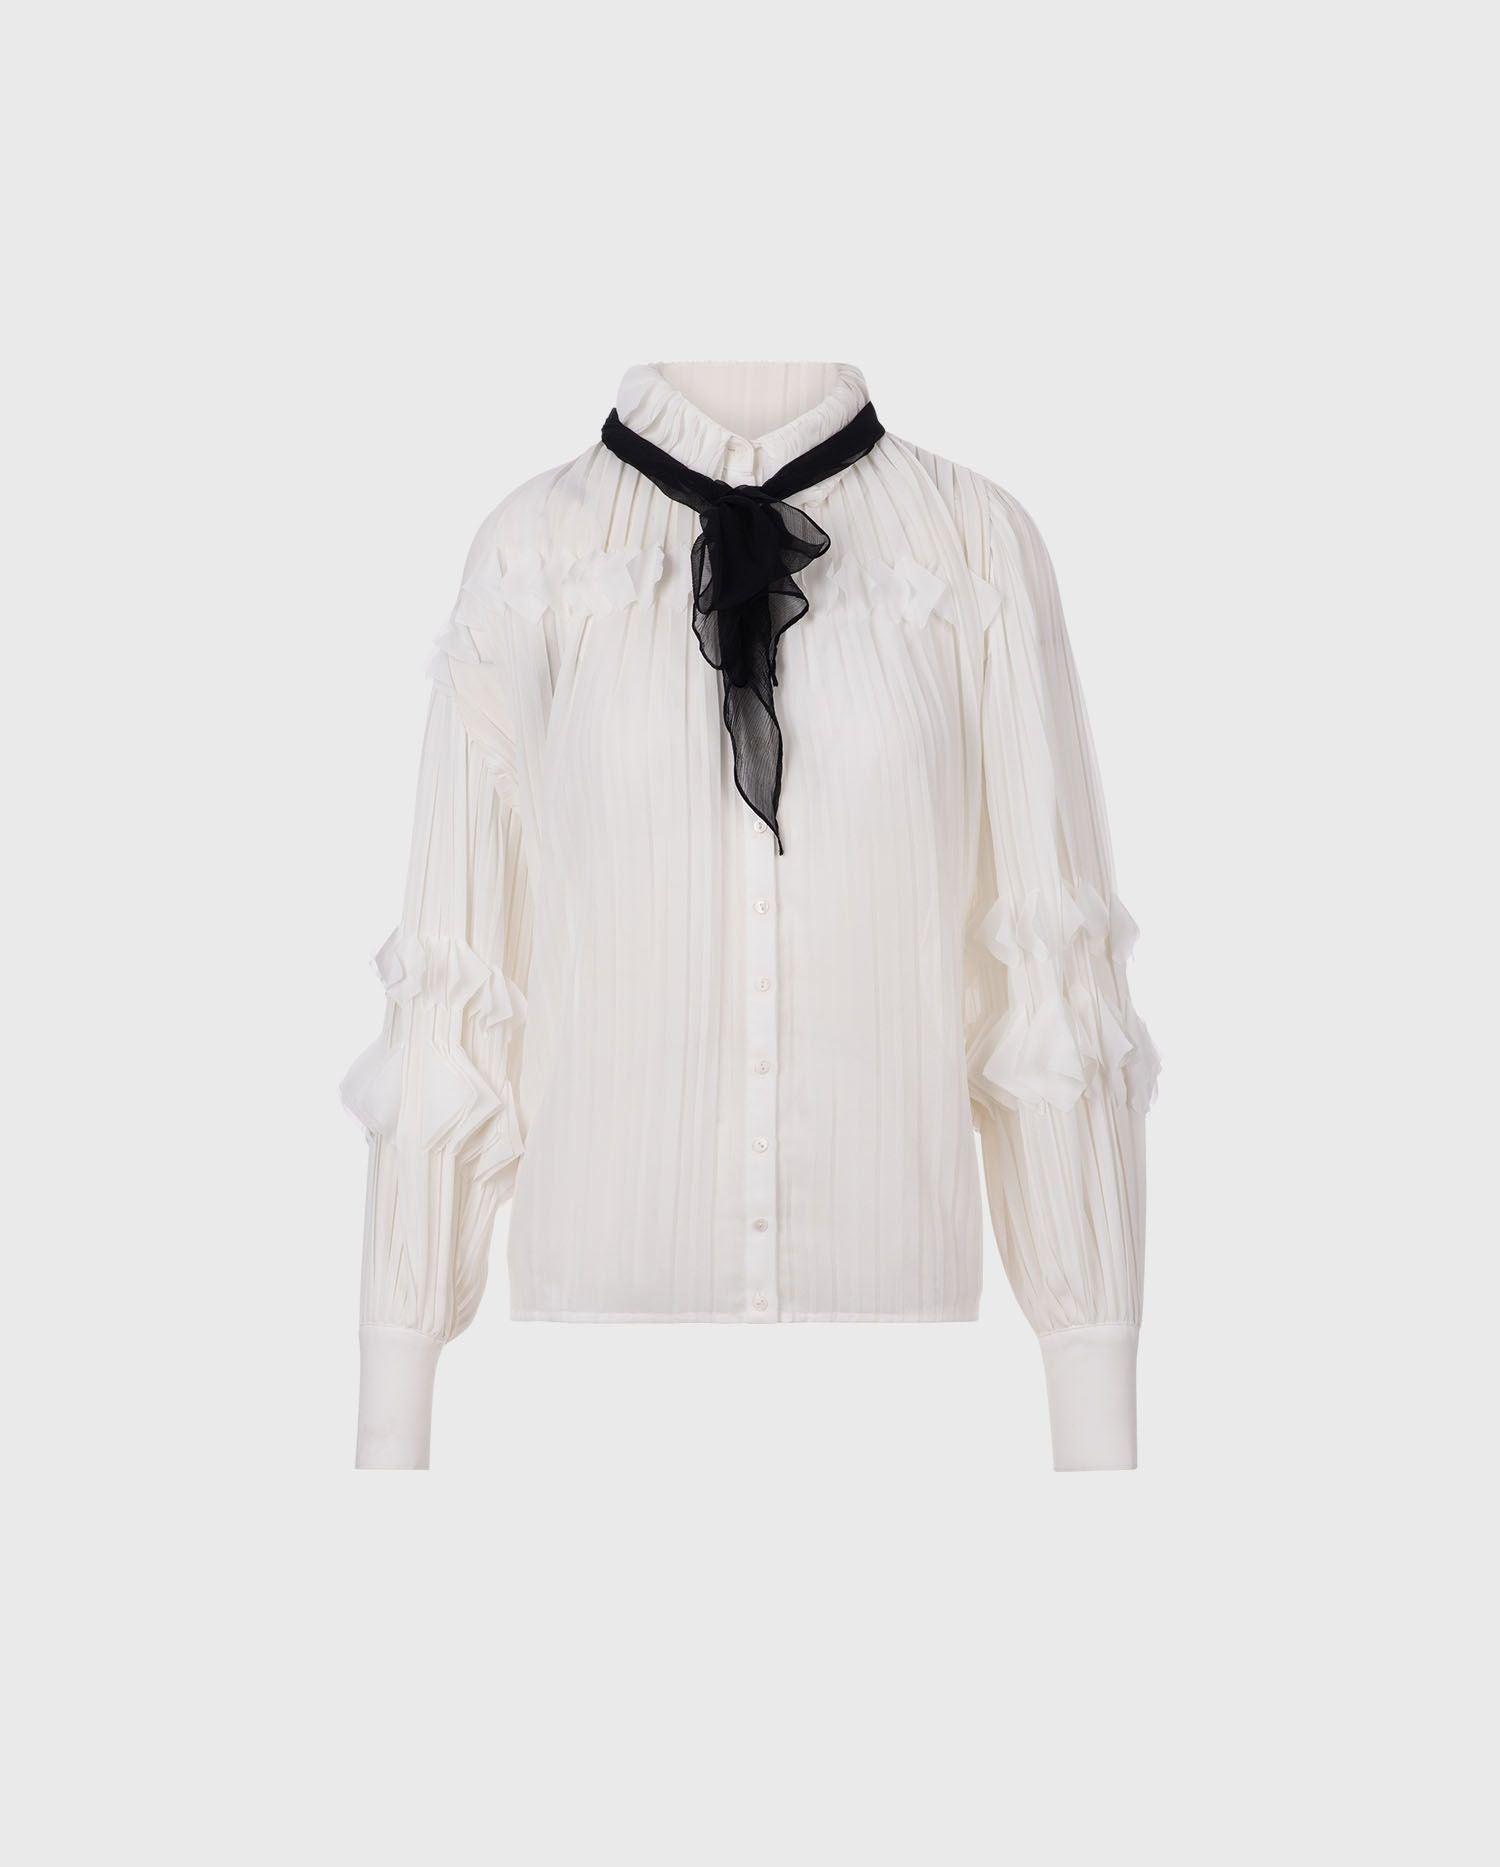 Add the Samantha-H18 blouse to your style for a look of effortless chic